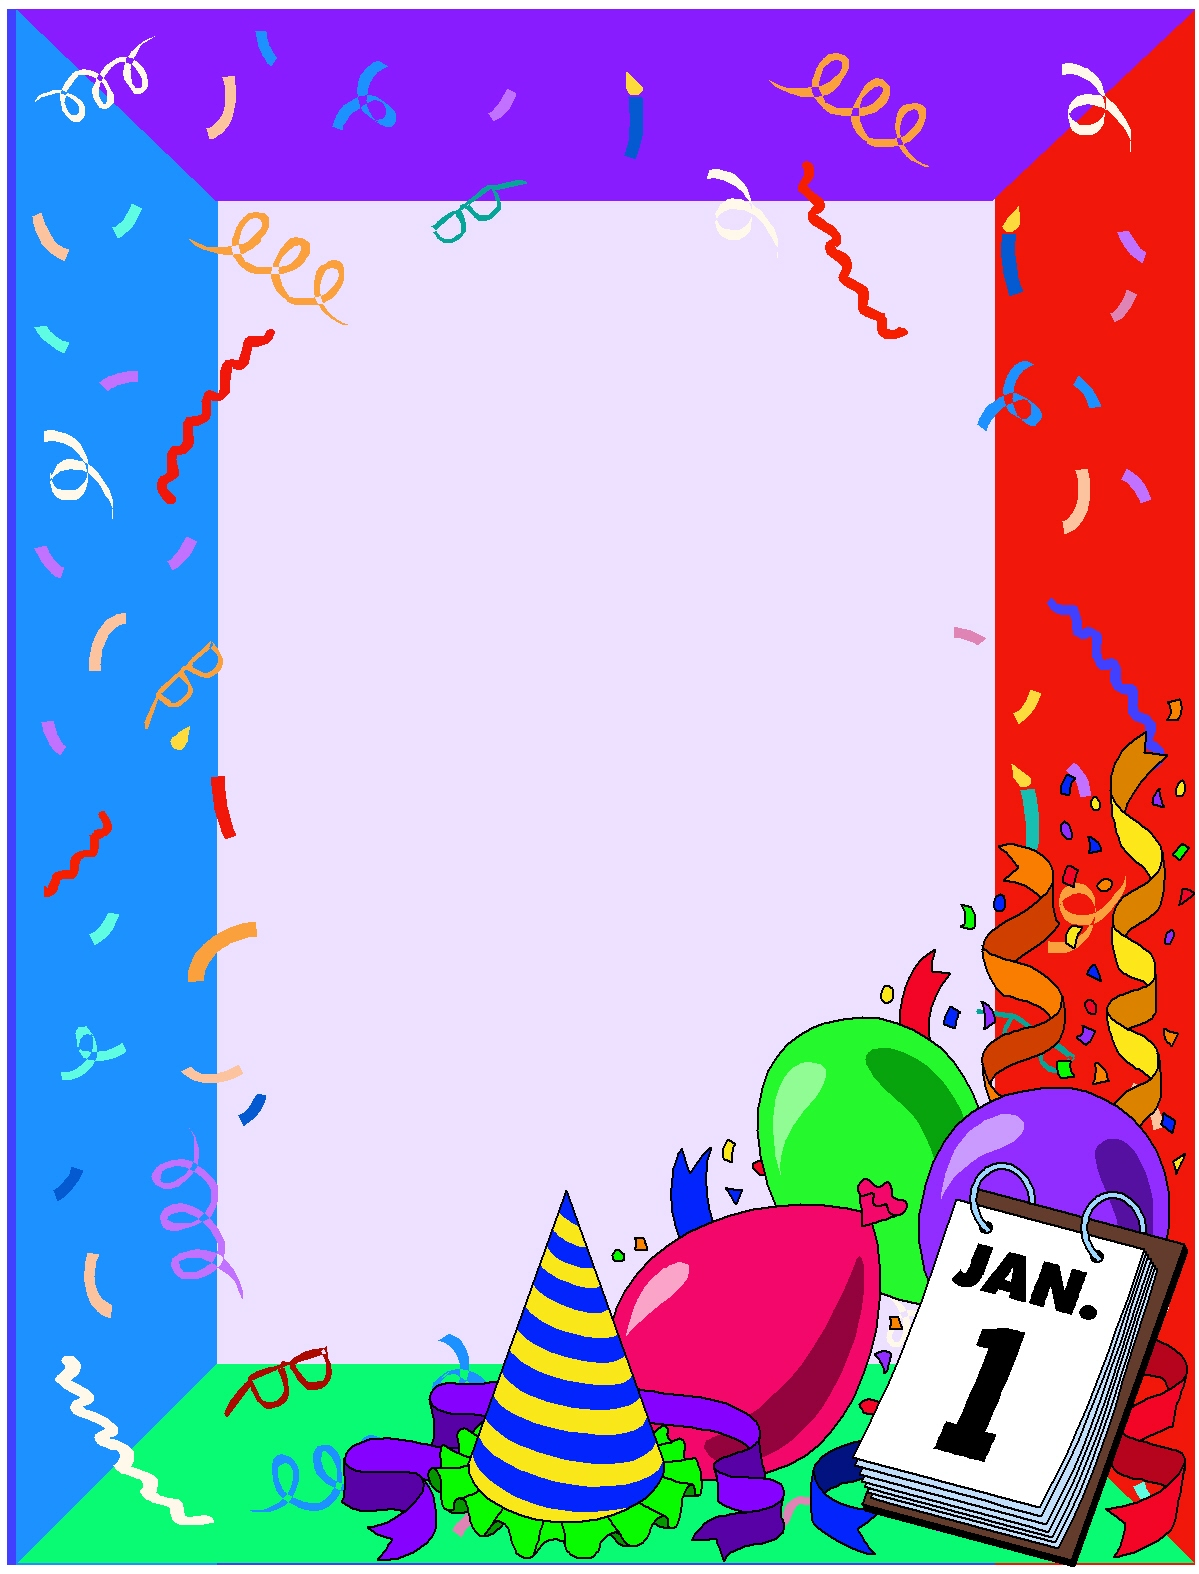 ... Twitter Share To Facebook Share To .Clip Art Christian New Years Eve